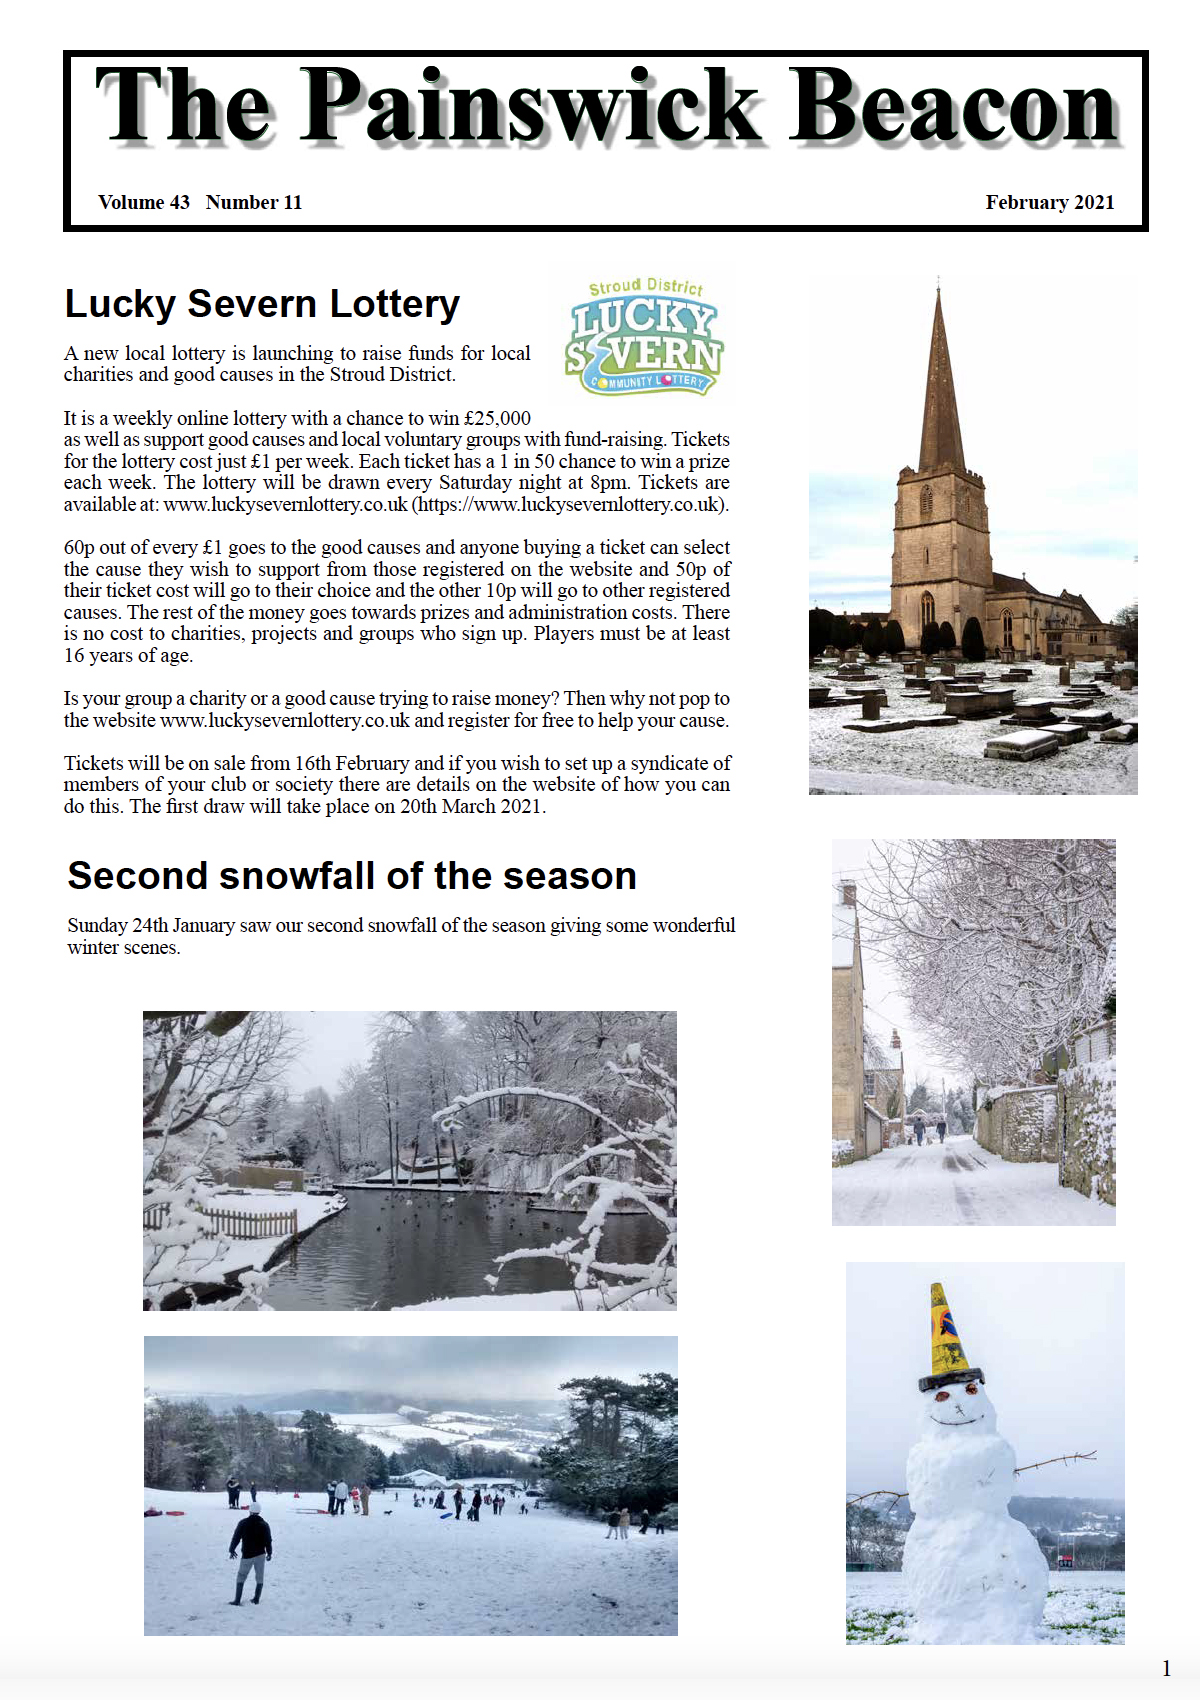 The latest edition of The Painswick Beacon Feb 2021